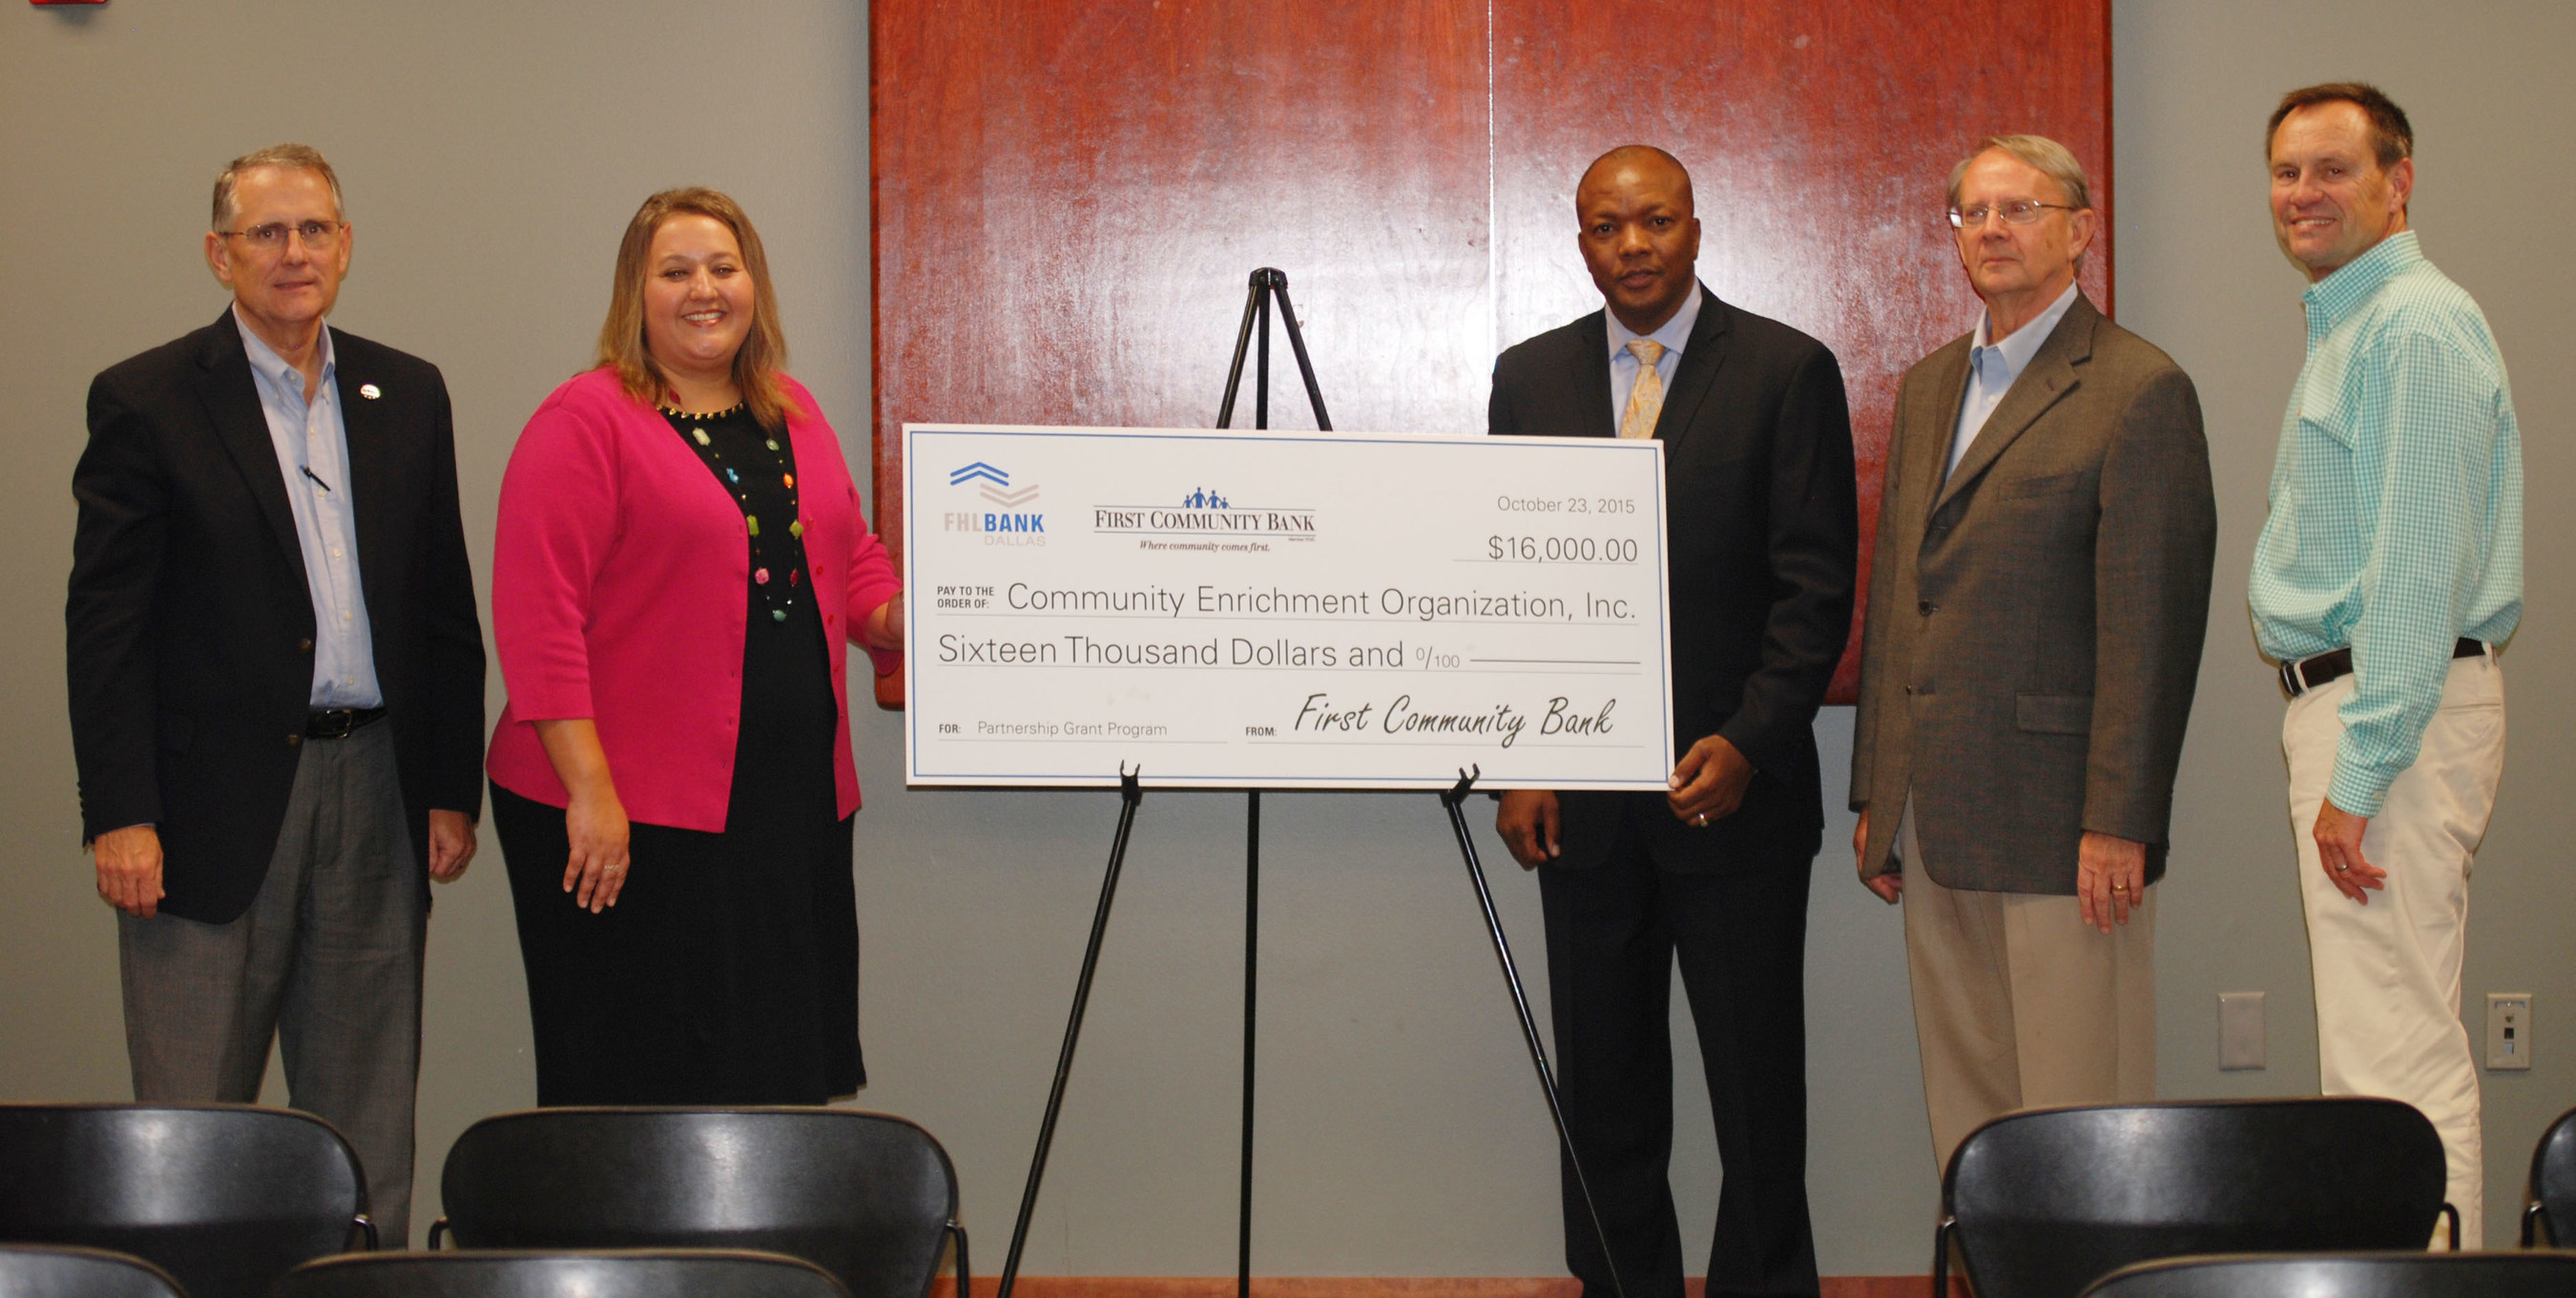 The Community Enrichment Organization, a Batesville, Arkansas-based nonprofit, received a $16,000 Partnership Grant Program award last week in a presentation that included representatives from First Community Bank and the Federal Home Loan Bank of Dallas. The funds will be used to train and hire staff members for the nonprofit's new family-focused homeless shelter.